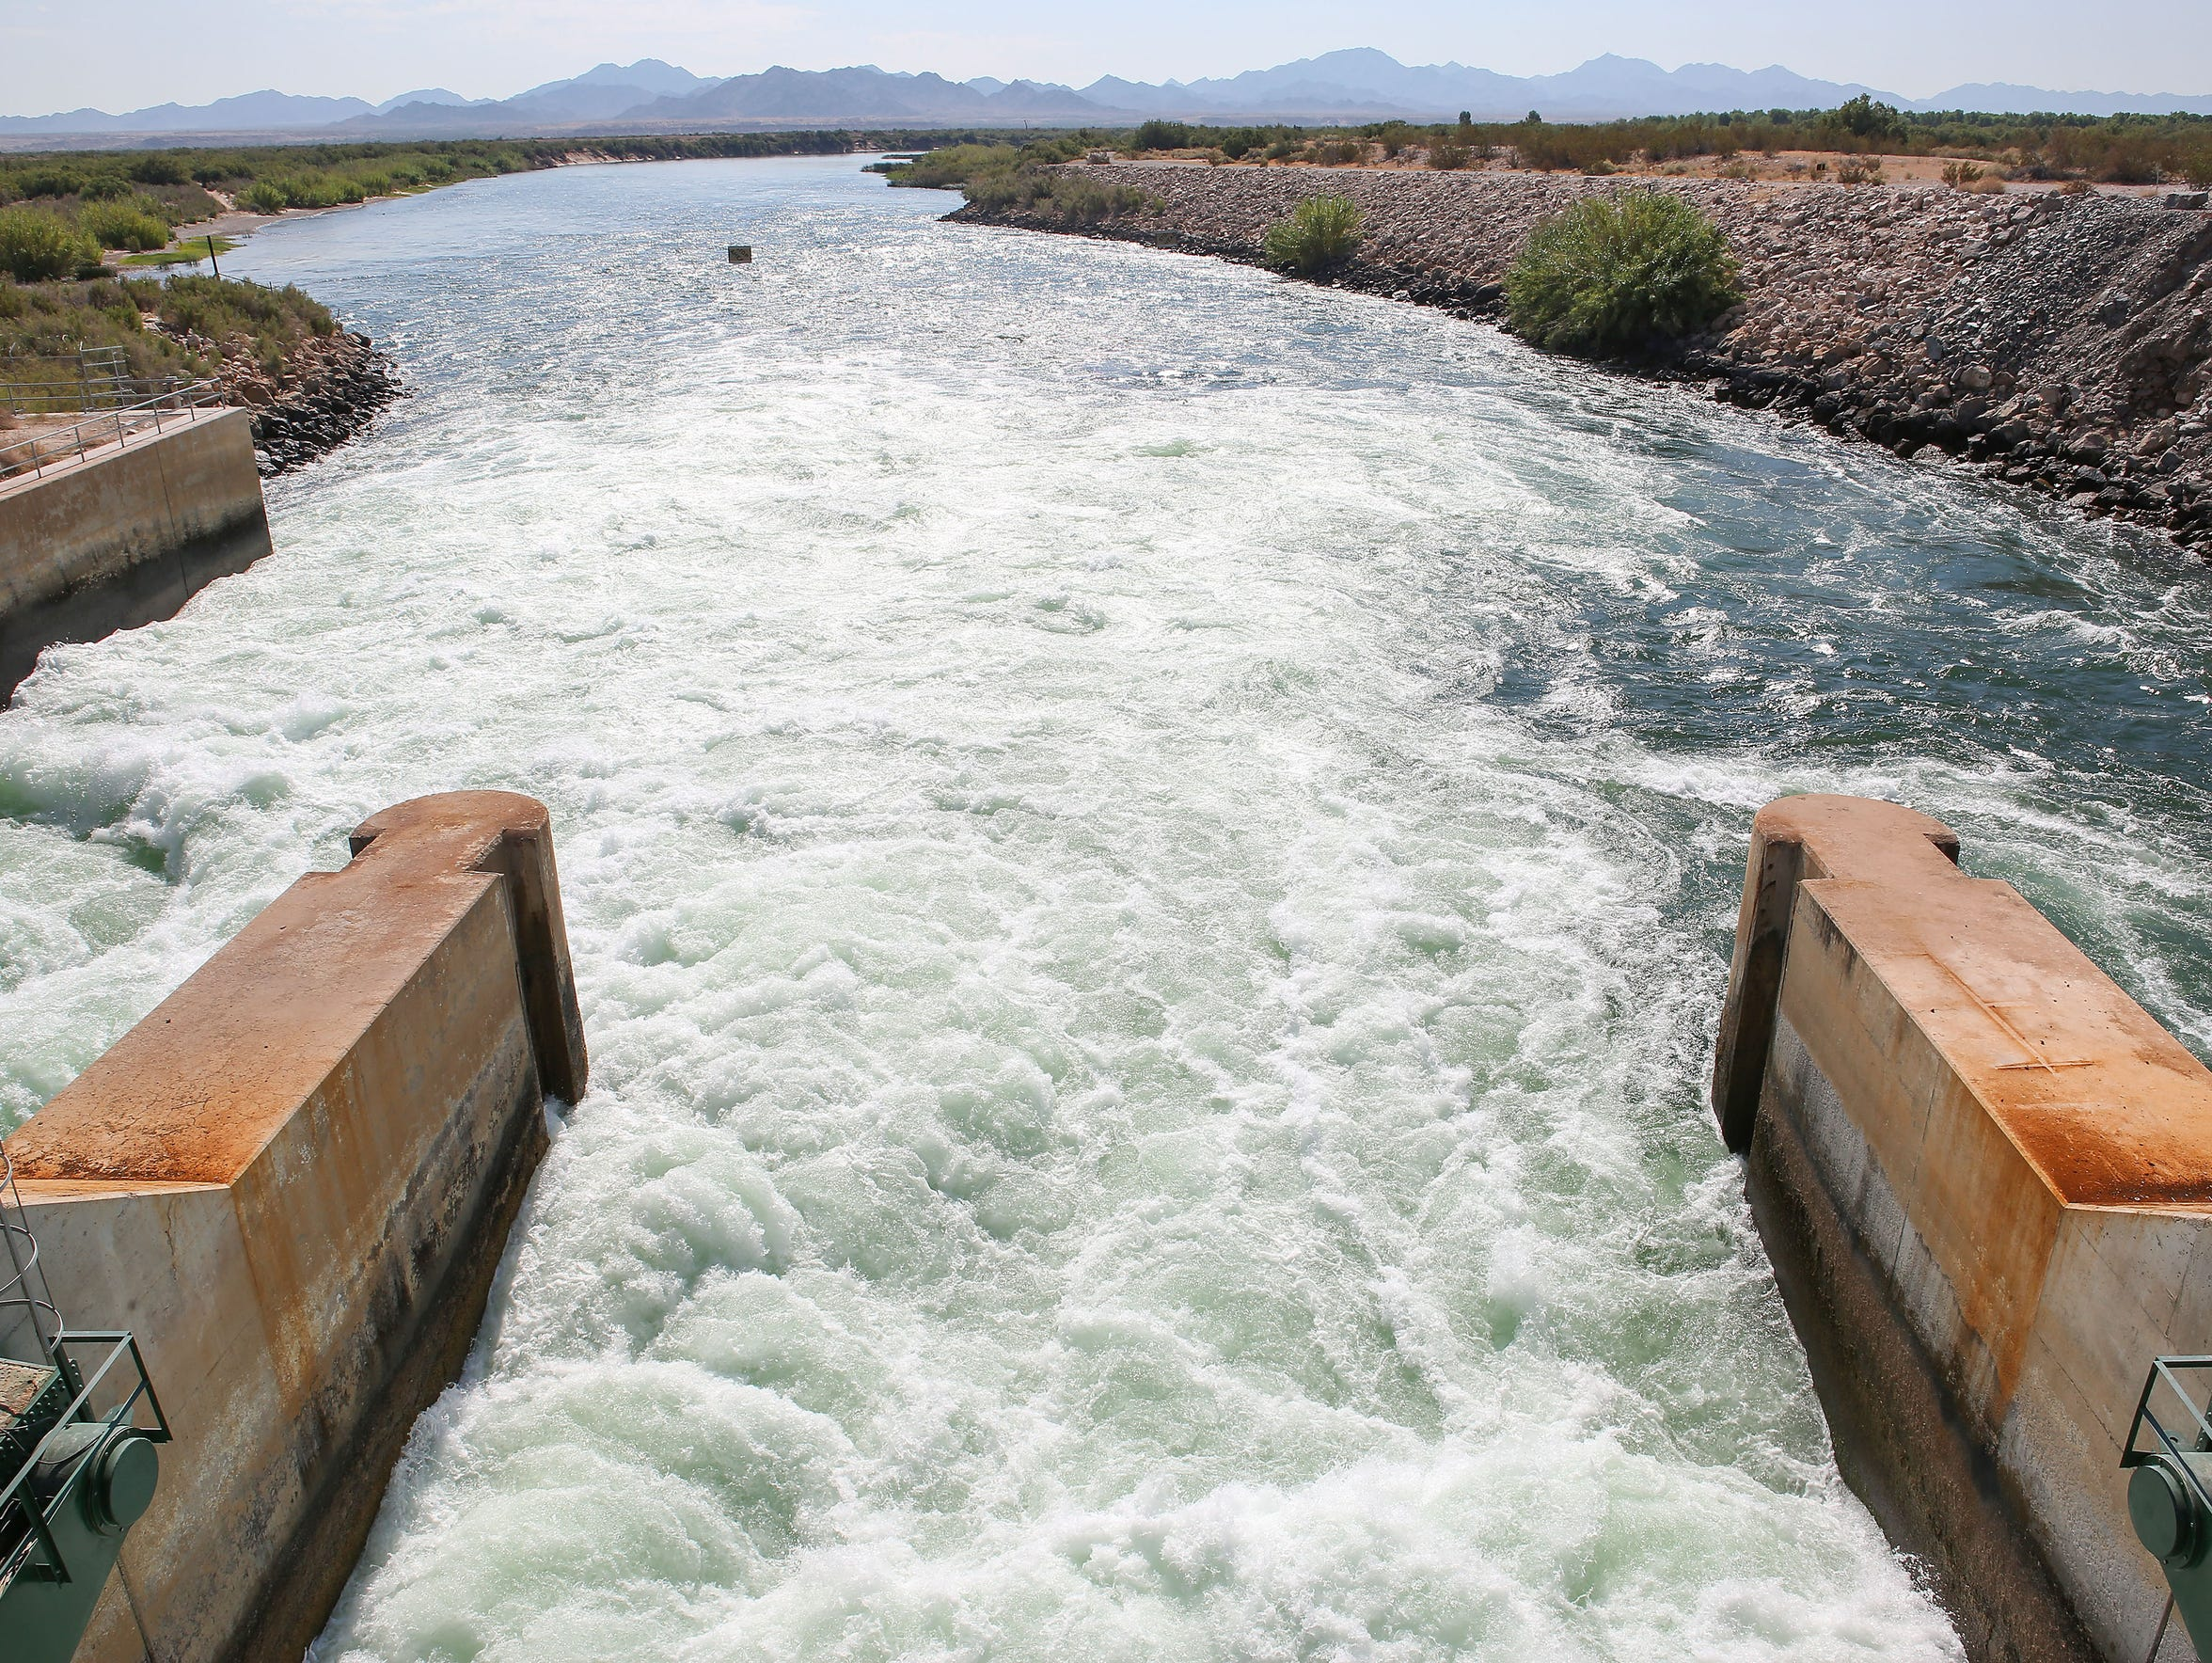 The Colorado River flows out of the Palo Verde Diversion